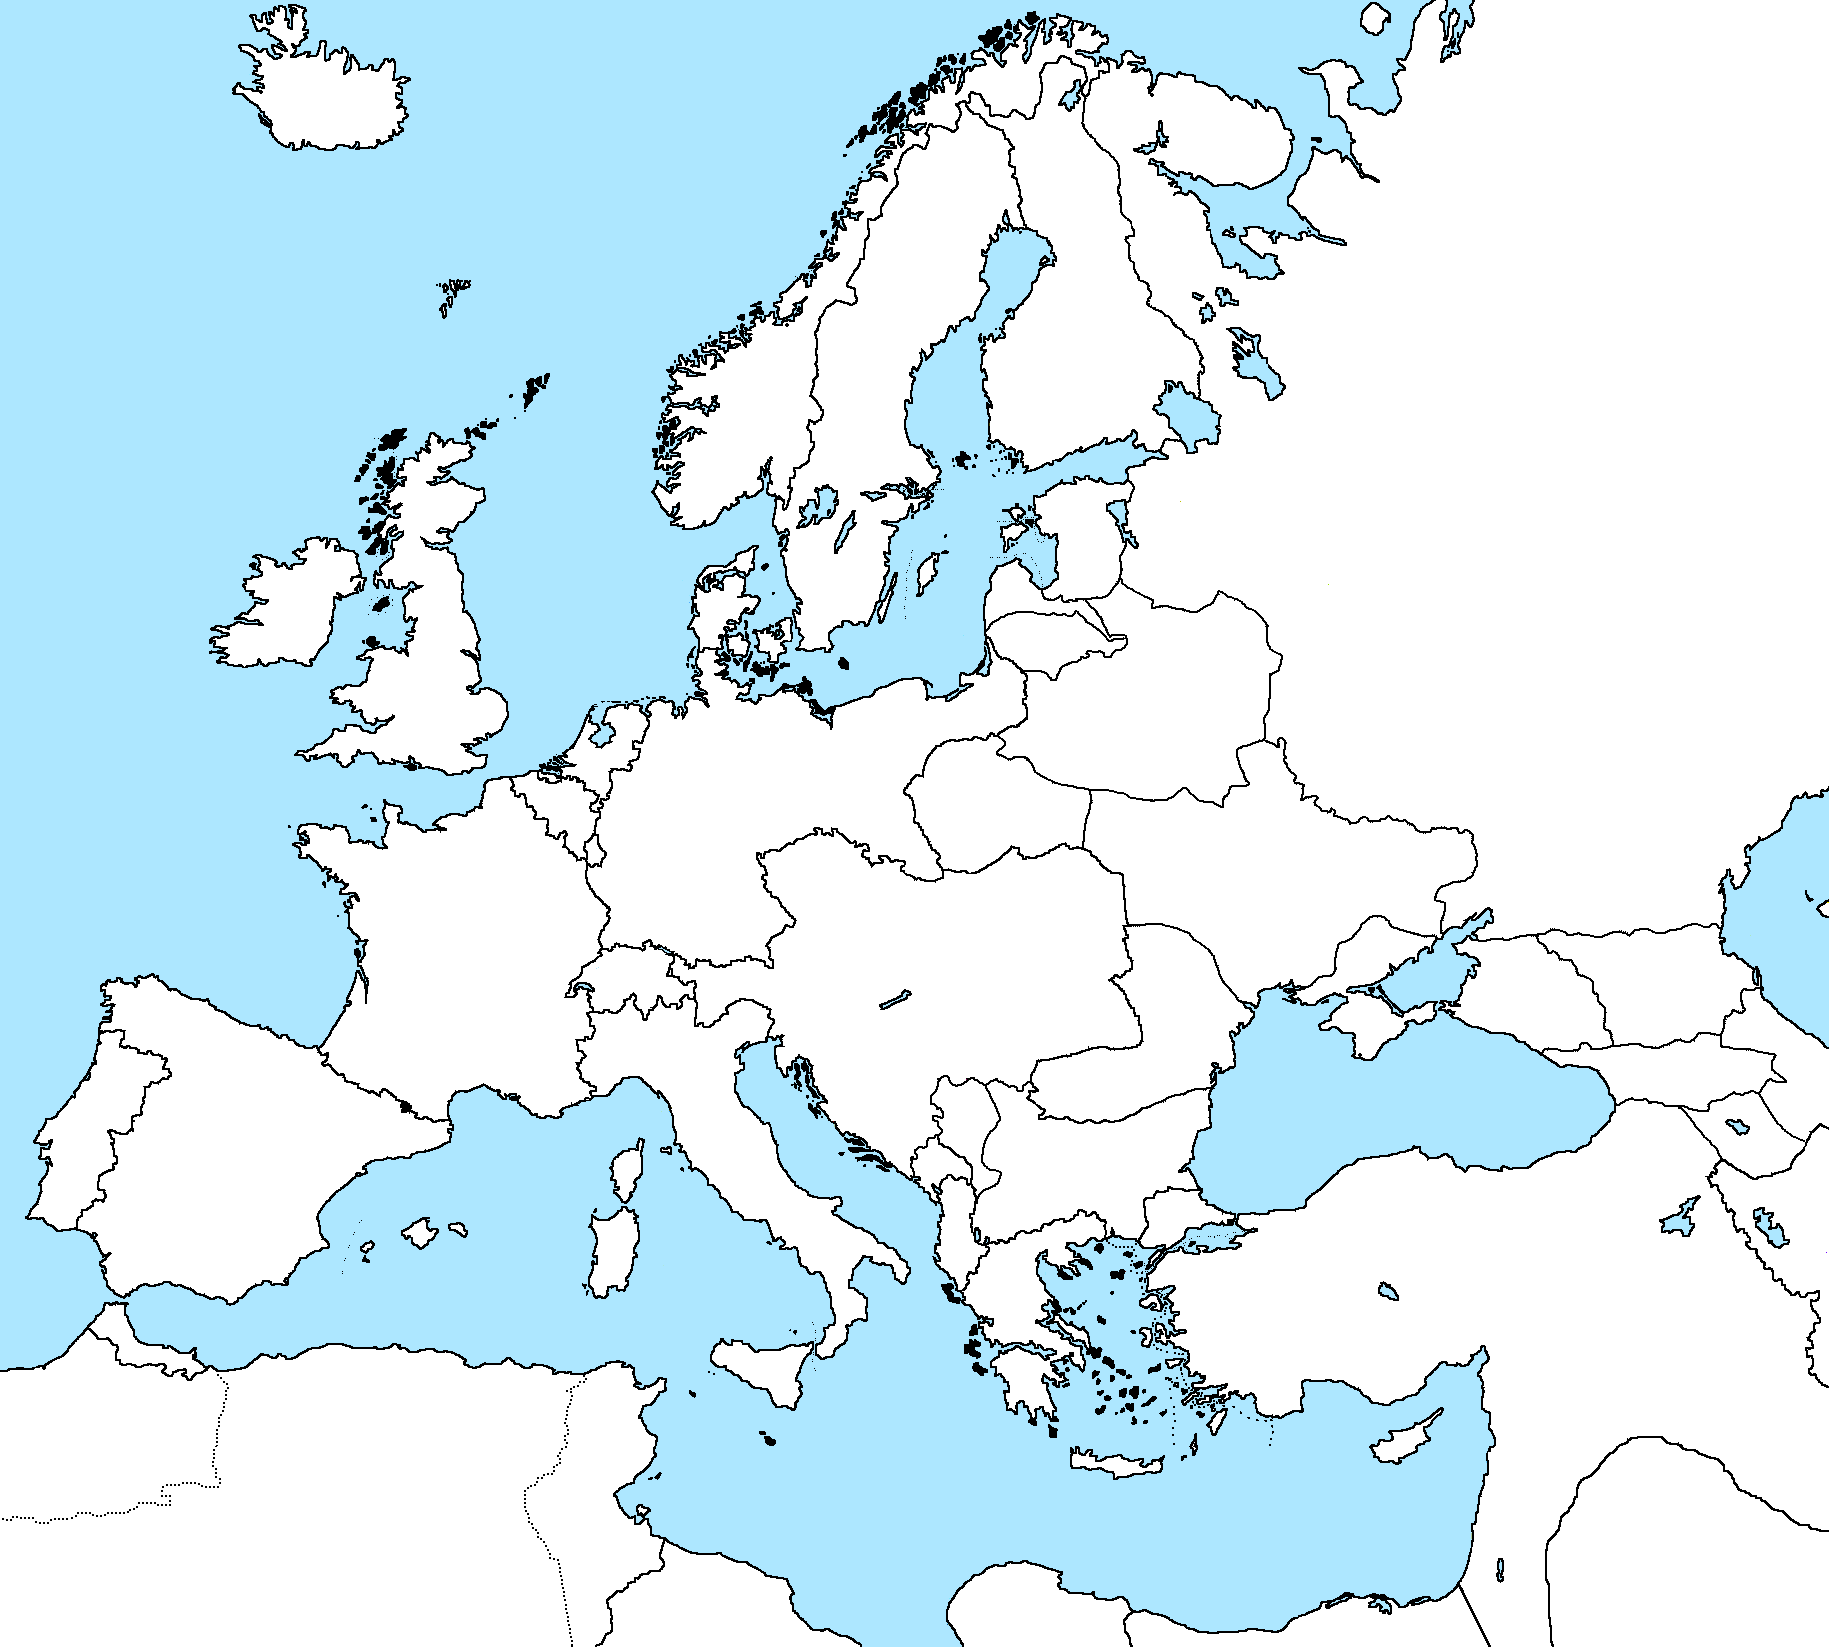 Blank Map of Europe 1918 by xGeograd on DeviantArt